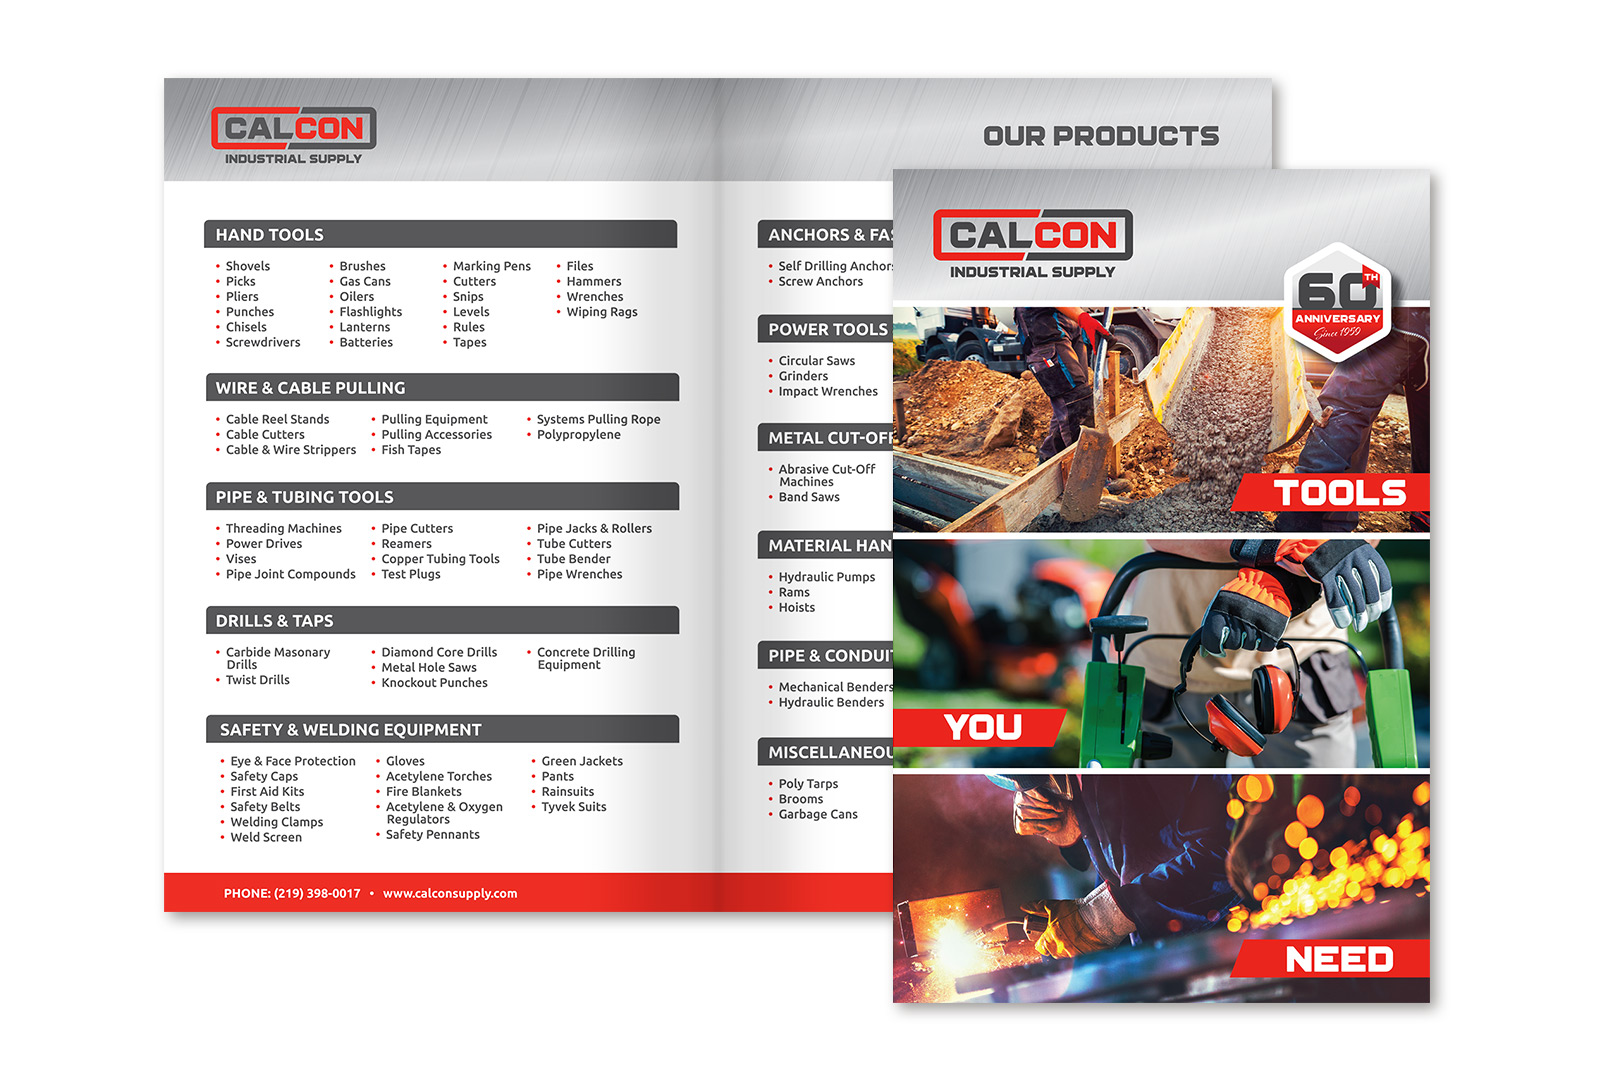 CalCon brochure layout graphic design